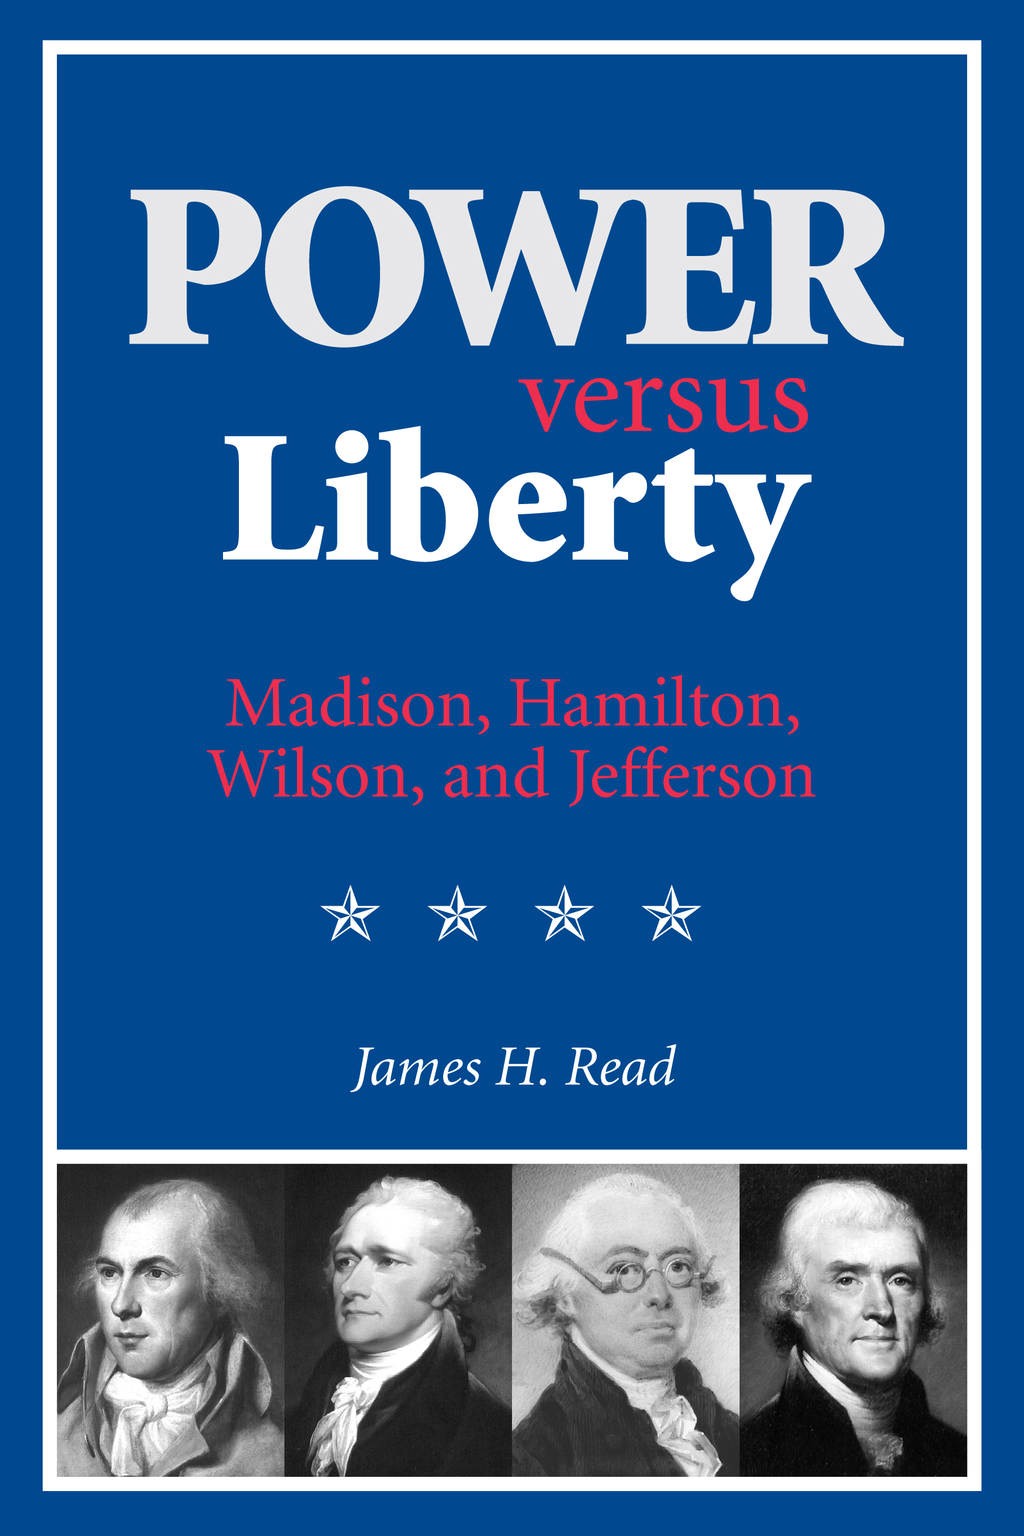 Power versus Liberty